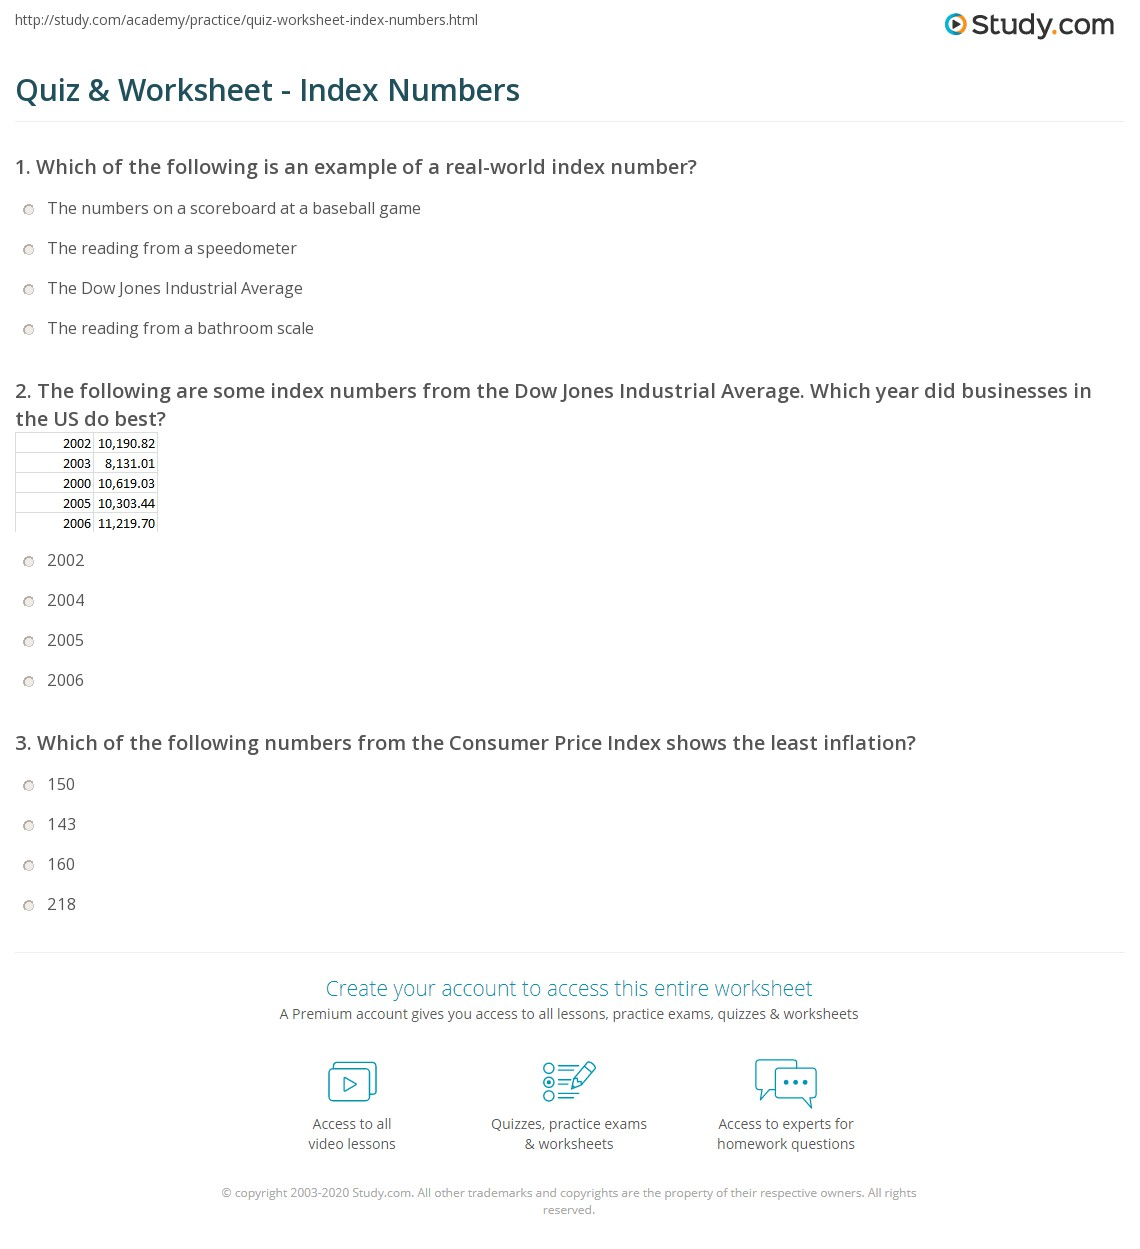 Quiz & Worksheet - Index Numbers | Study.com